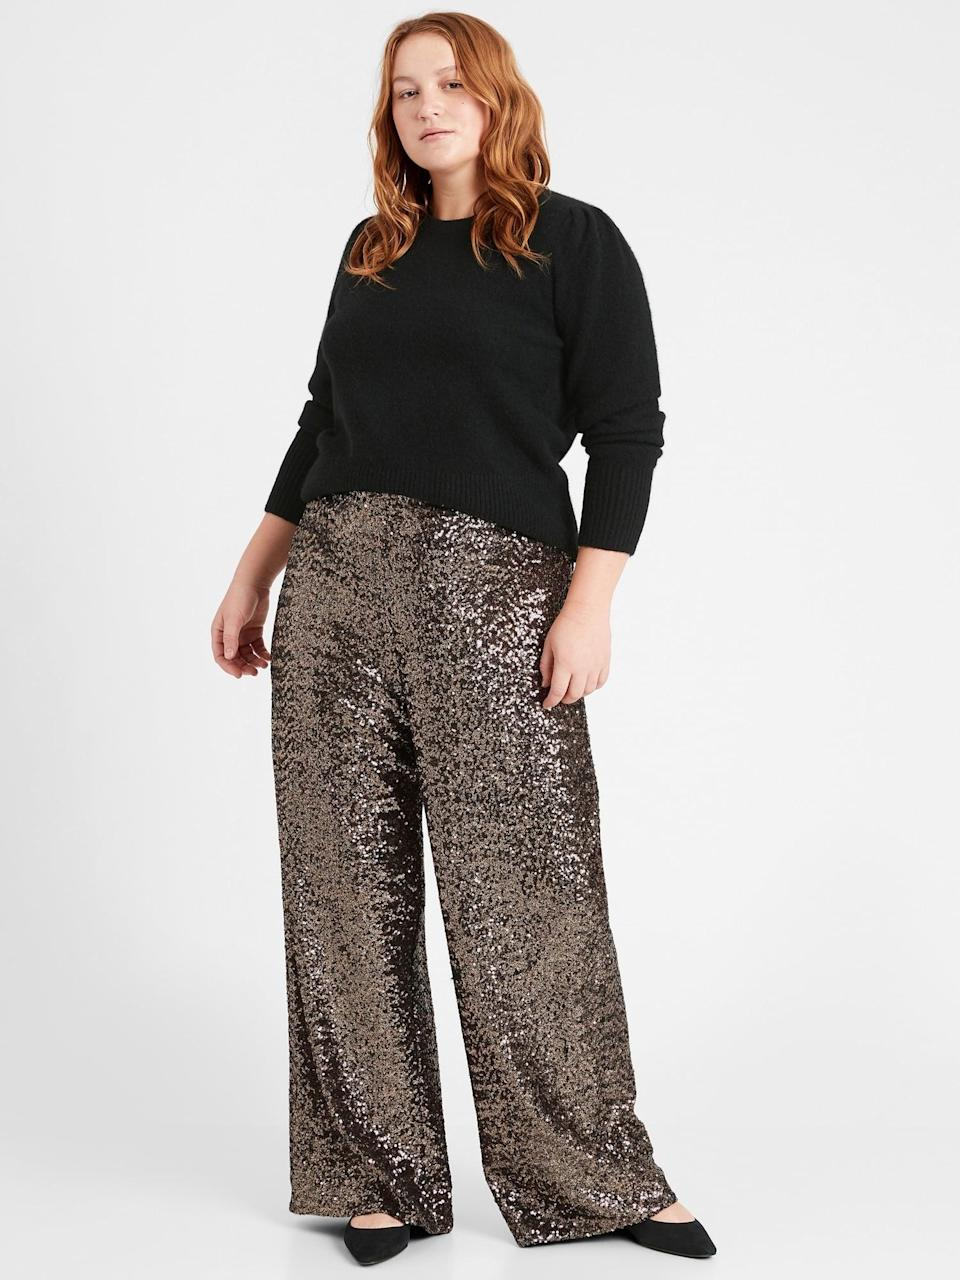 "<p>Have you ever tried wearing sequins during the day? These <span>Banana Republic High-Rise Wide-Leg Sequin Pant</span> ($75, originally $110) are in <i>instant</i> mood lifter. Pair them with a pair of your favorite low-top white sneakers and turtle neck for a cool look for errands. Check out the reviews ""They are sparkly and I bought them to use as joggers on miserable days."" These seem to be perfect to cheer you up!</p>"